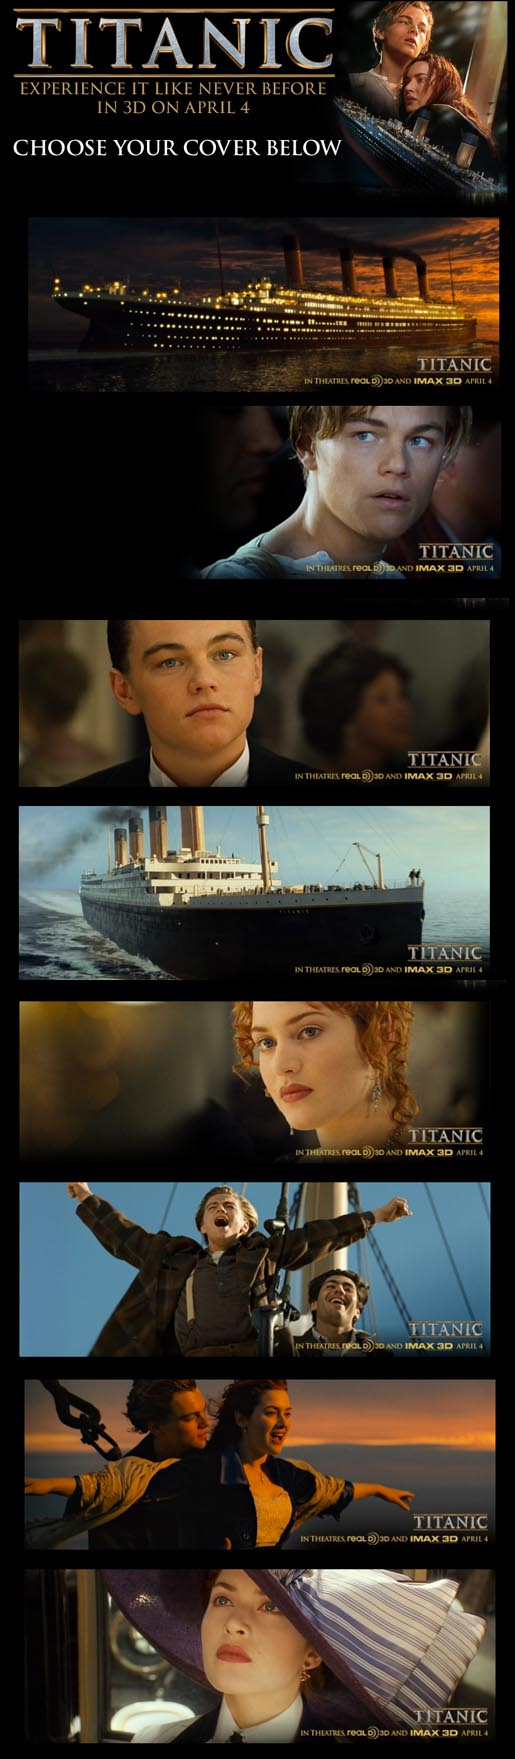 Titanic Facebook Timeline Covers